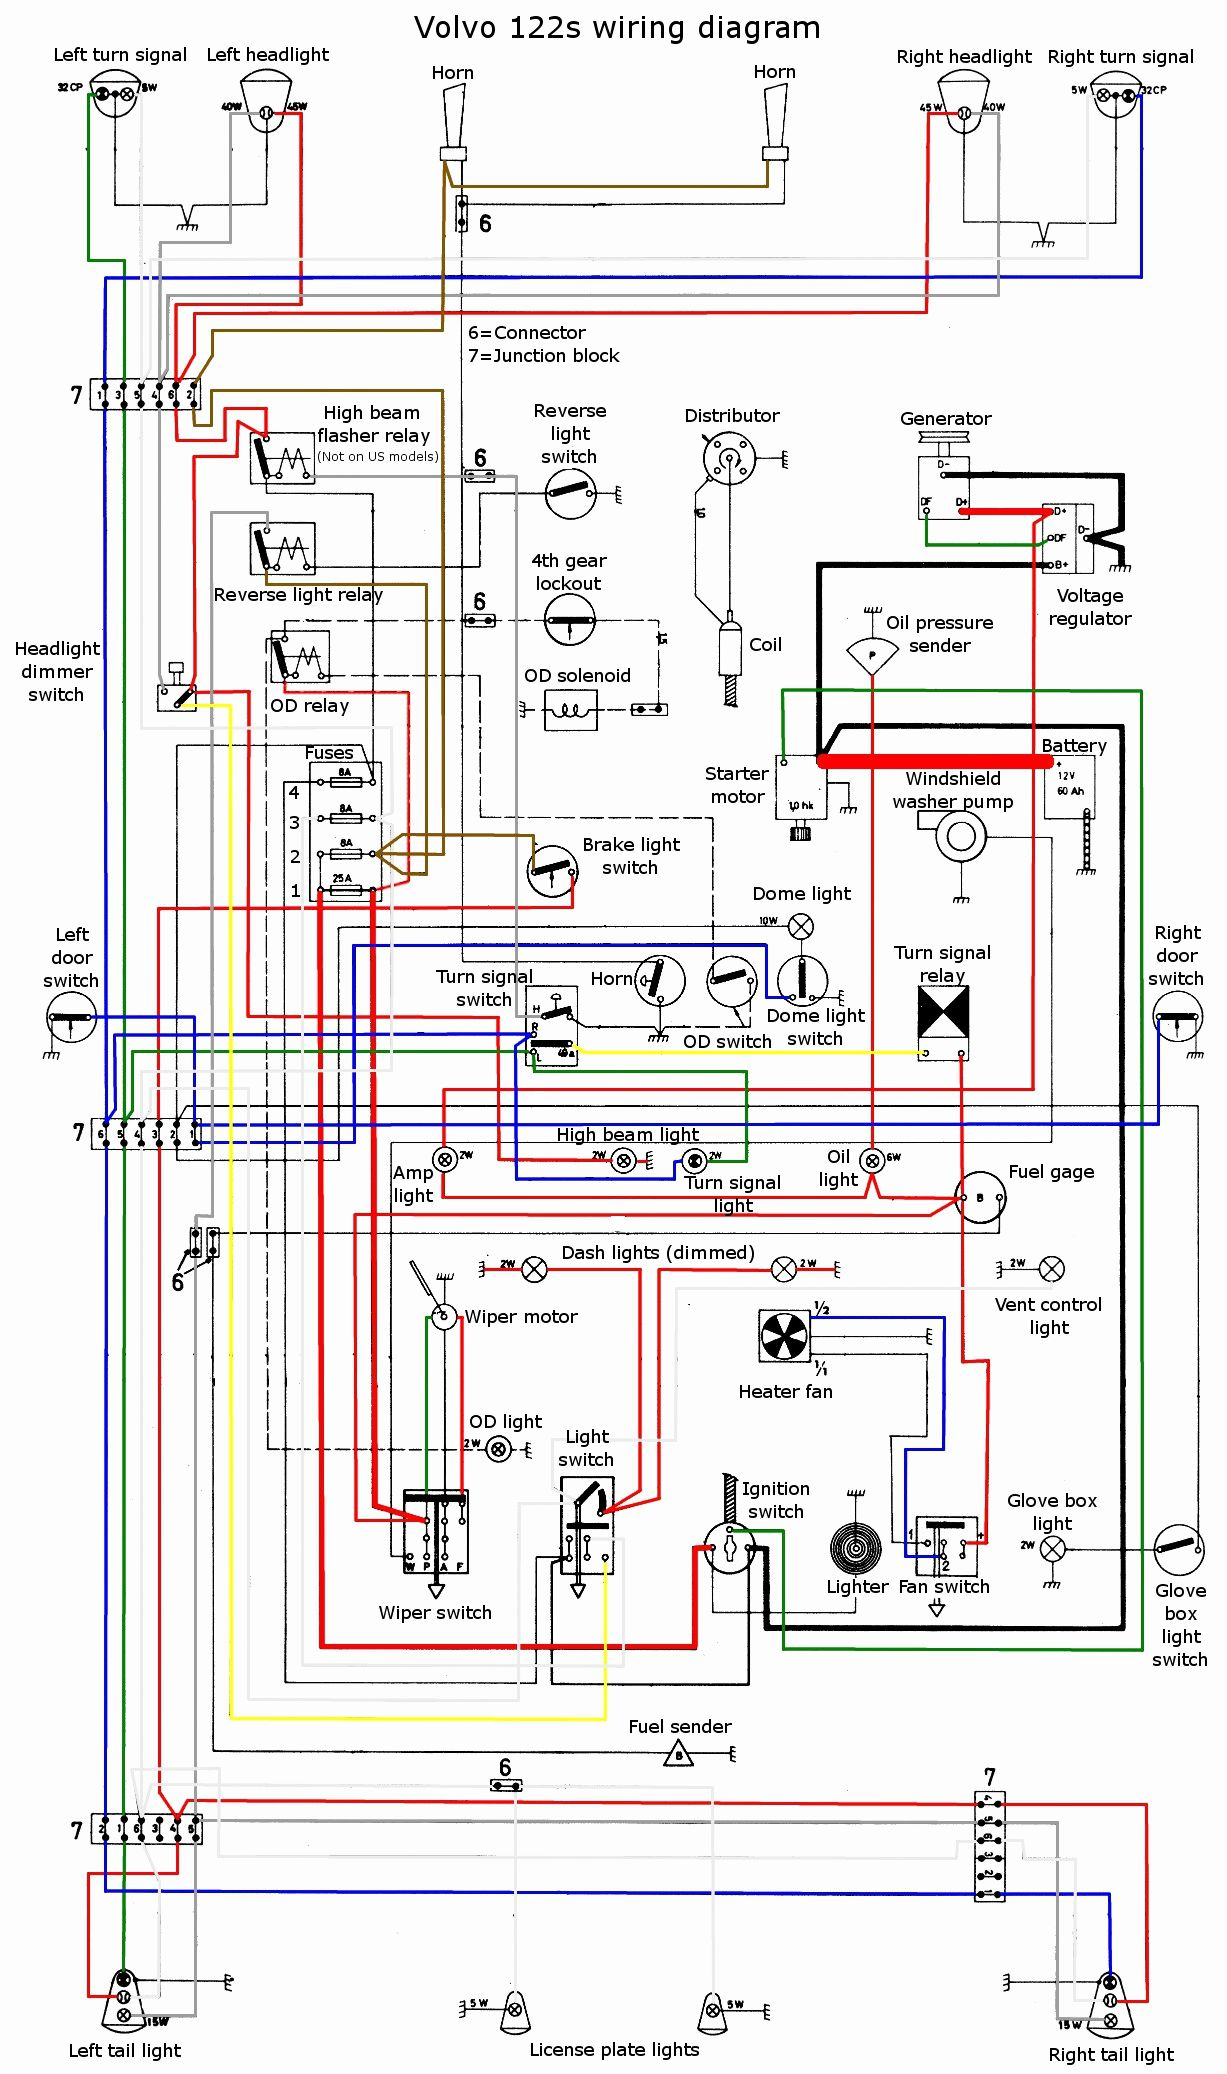 hight resolution of 2007 mitsubishi eclipse stereo wiring diagram rockford fosgate rockford fosgate wiring diagram